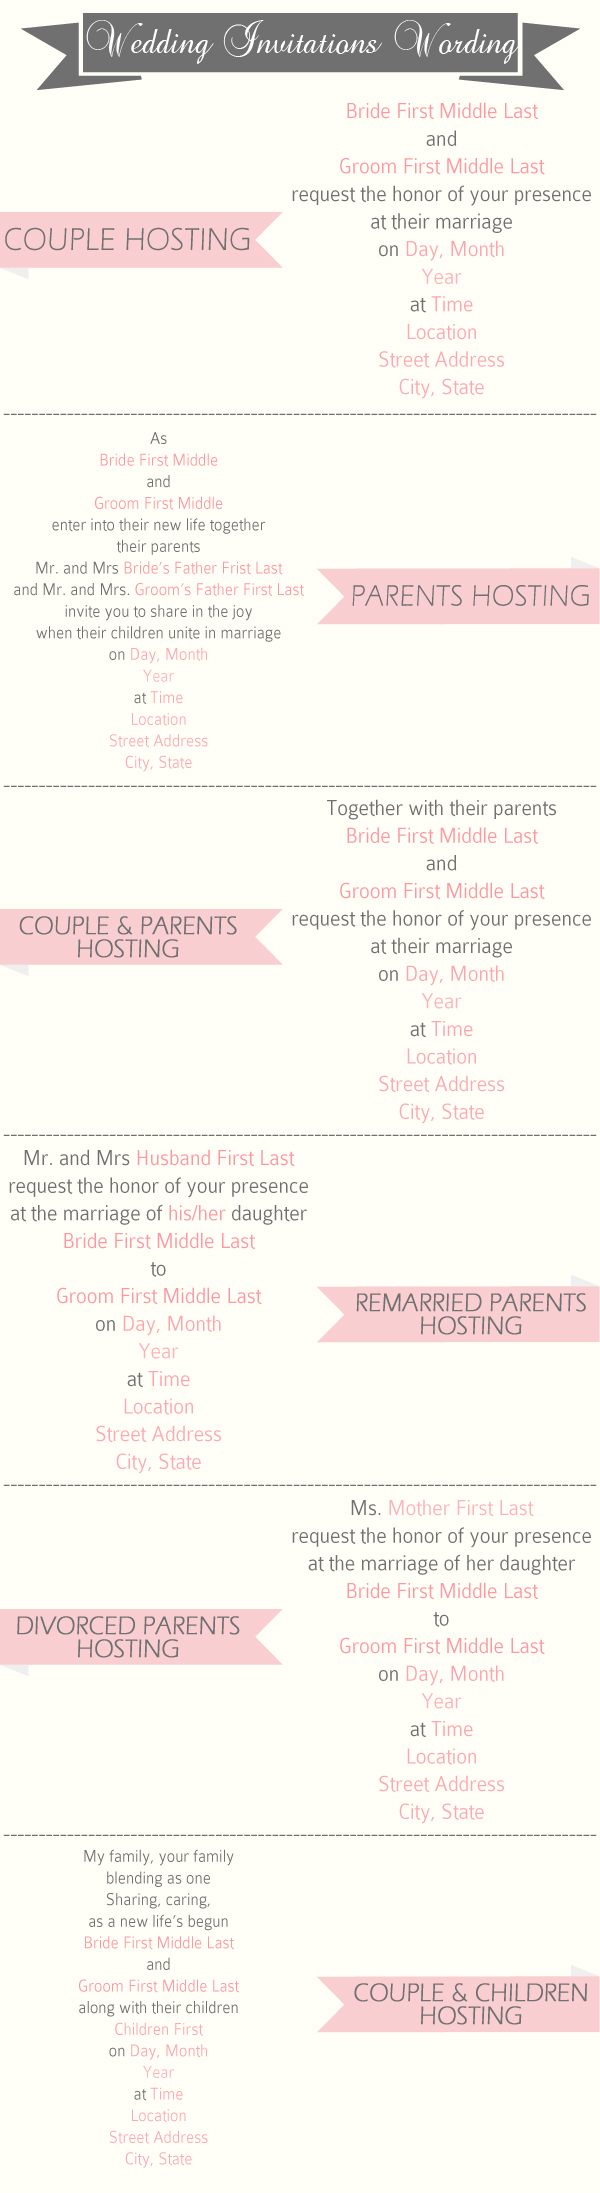 Sample Wedding Invitation Wedding Invitation Wording Samples To Invite Guests